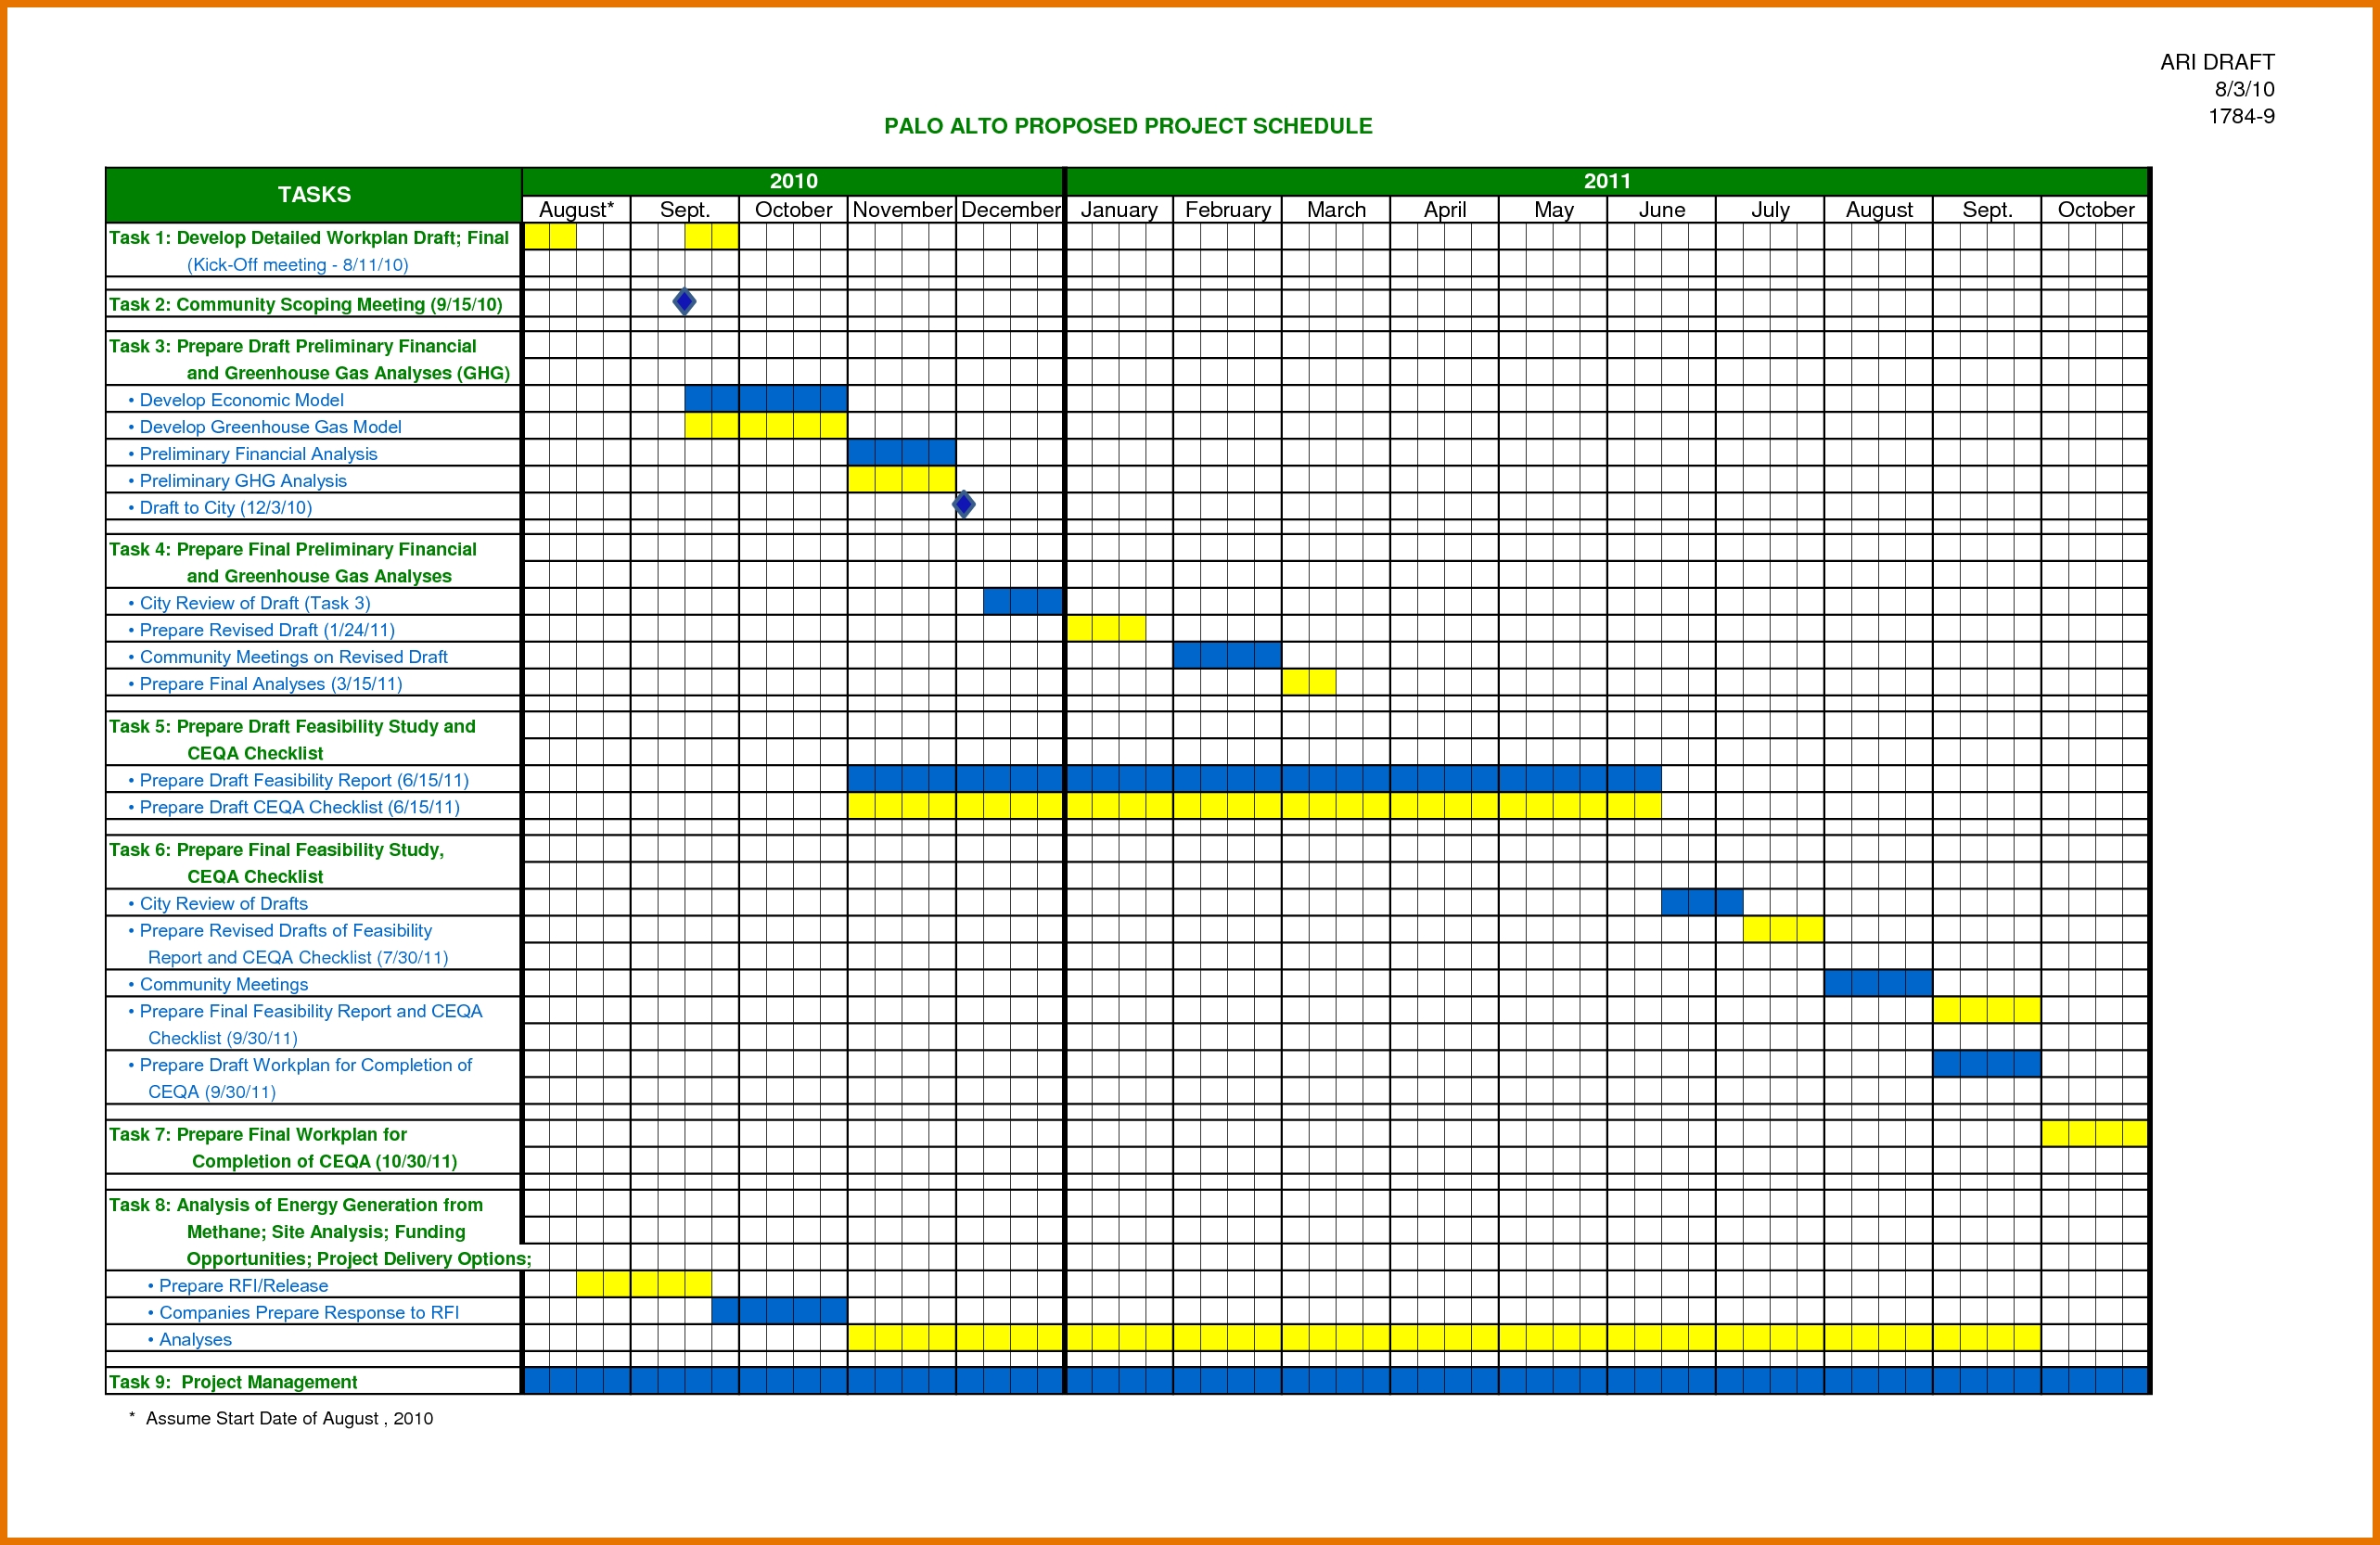 Excel Project Schedule Template Free   28 Images   Schedule